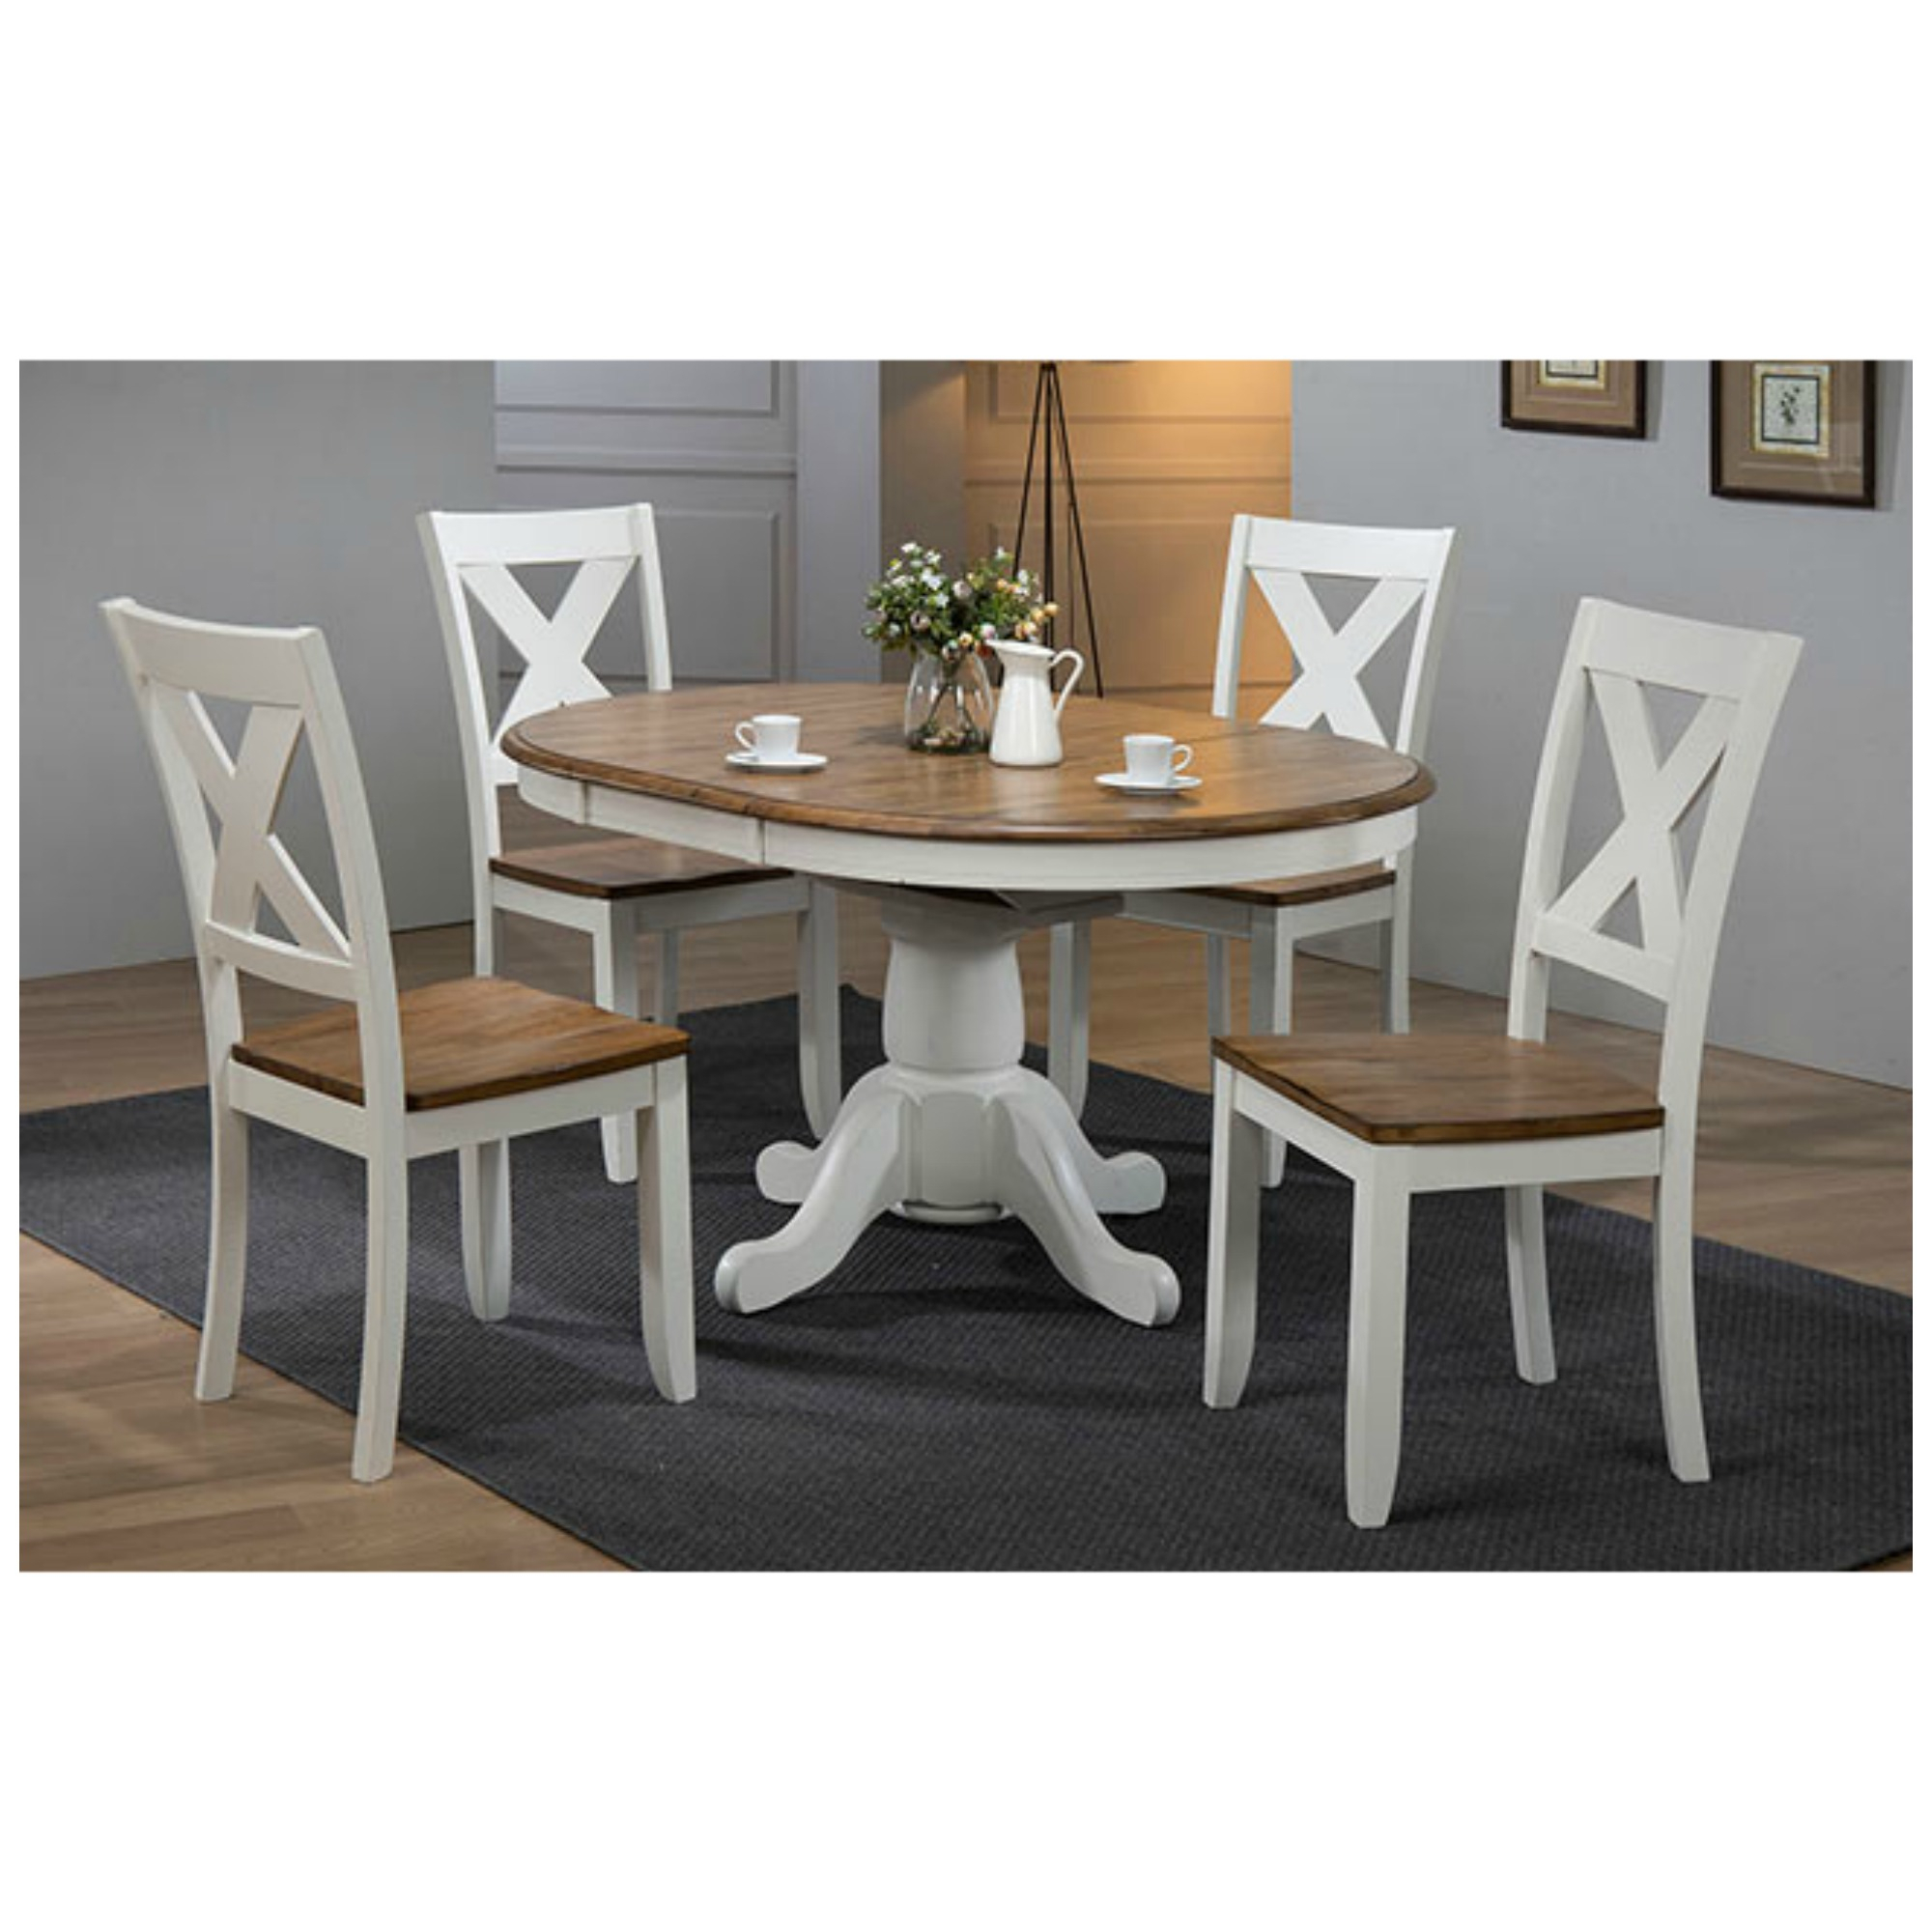 Pacifica 5 Piece Dining Set (Rustic Brown/White) With Best And Newest Villani Drop Leaf Rubberwood Solid Wood Pedestal Dining Tables (View 7 of 15)